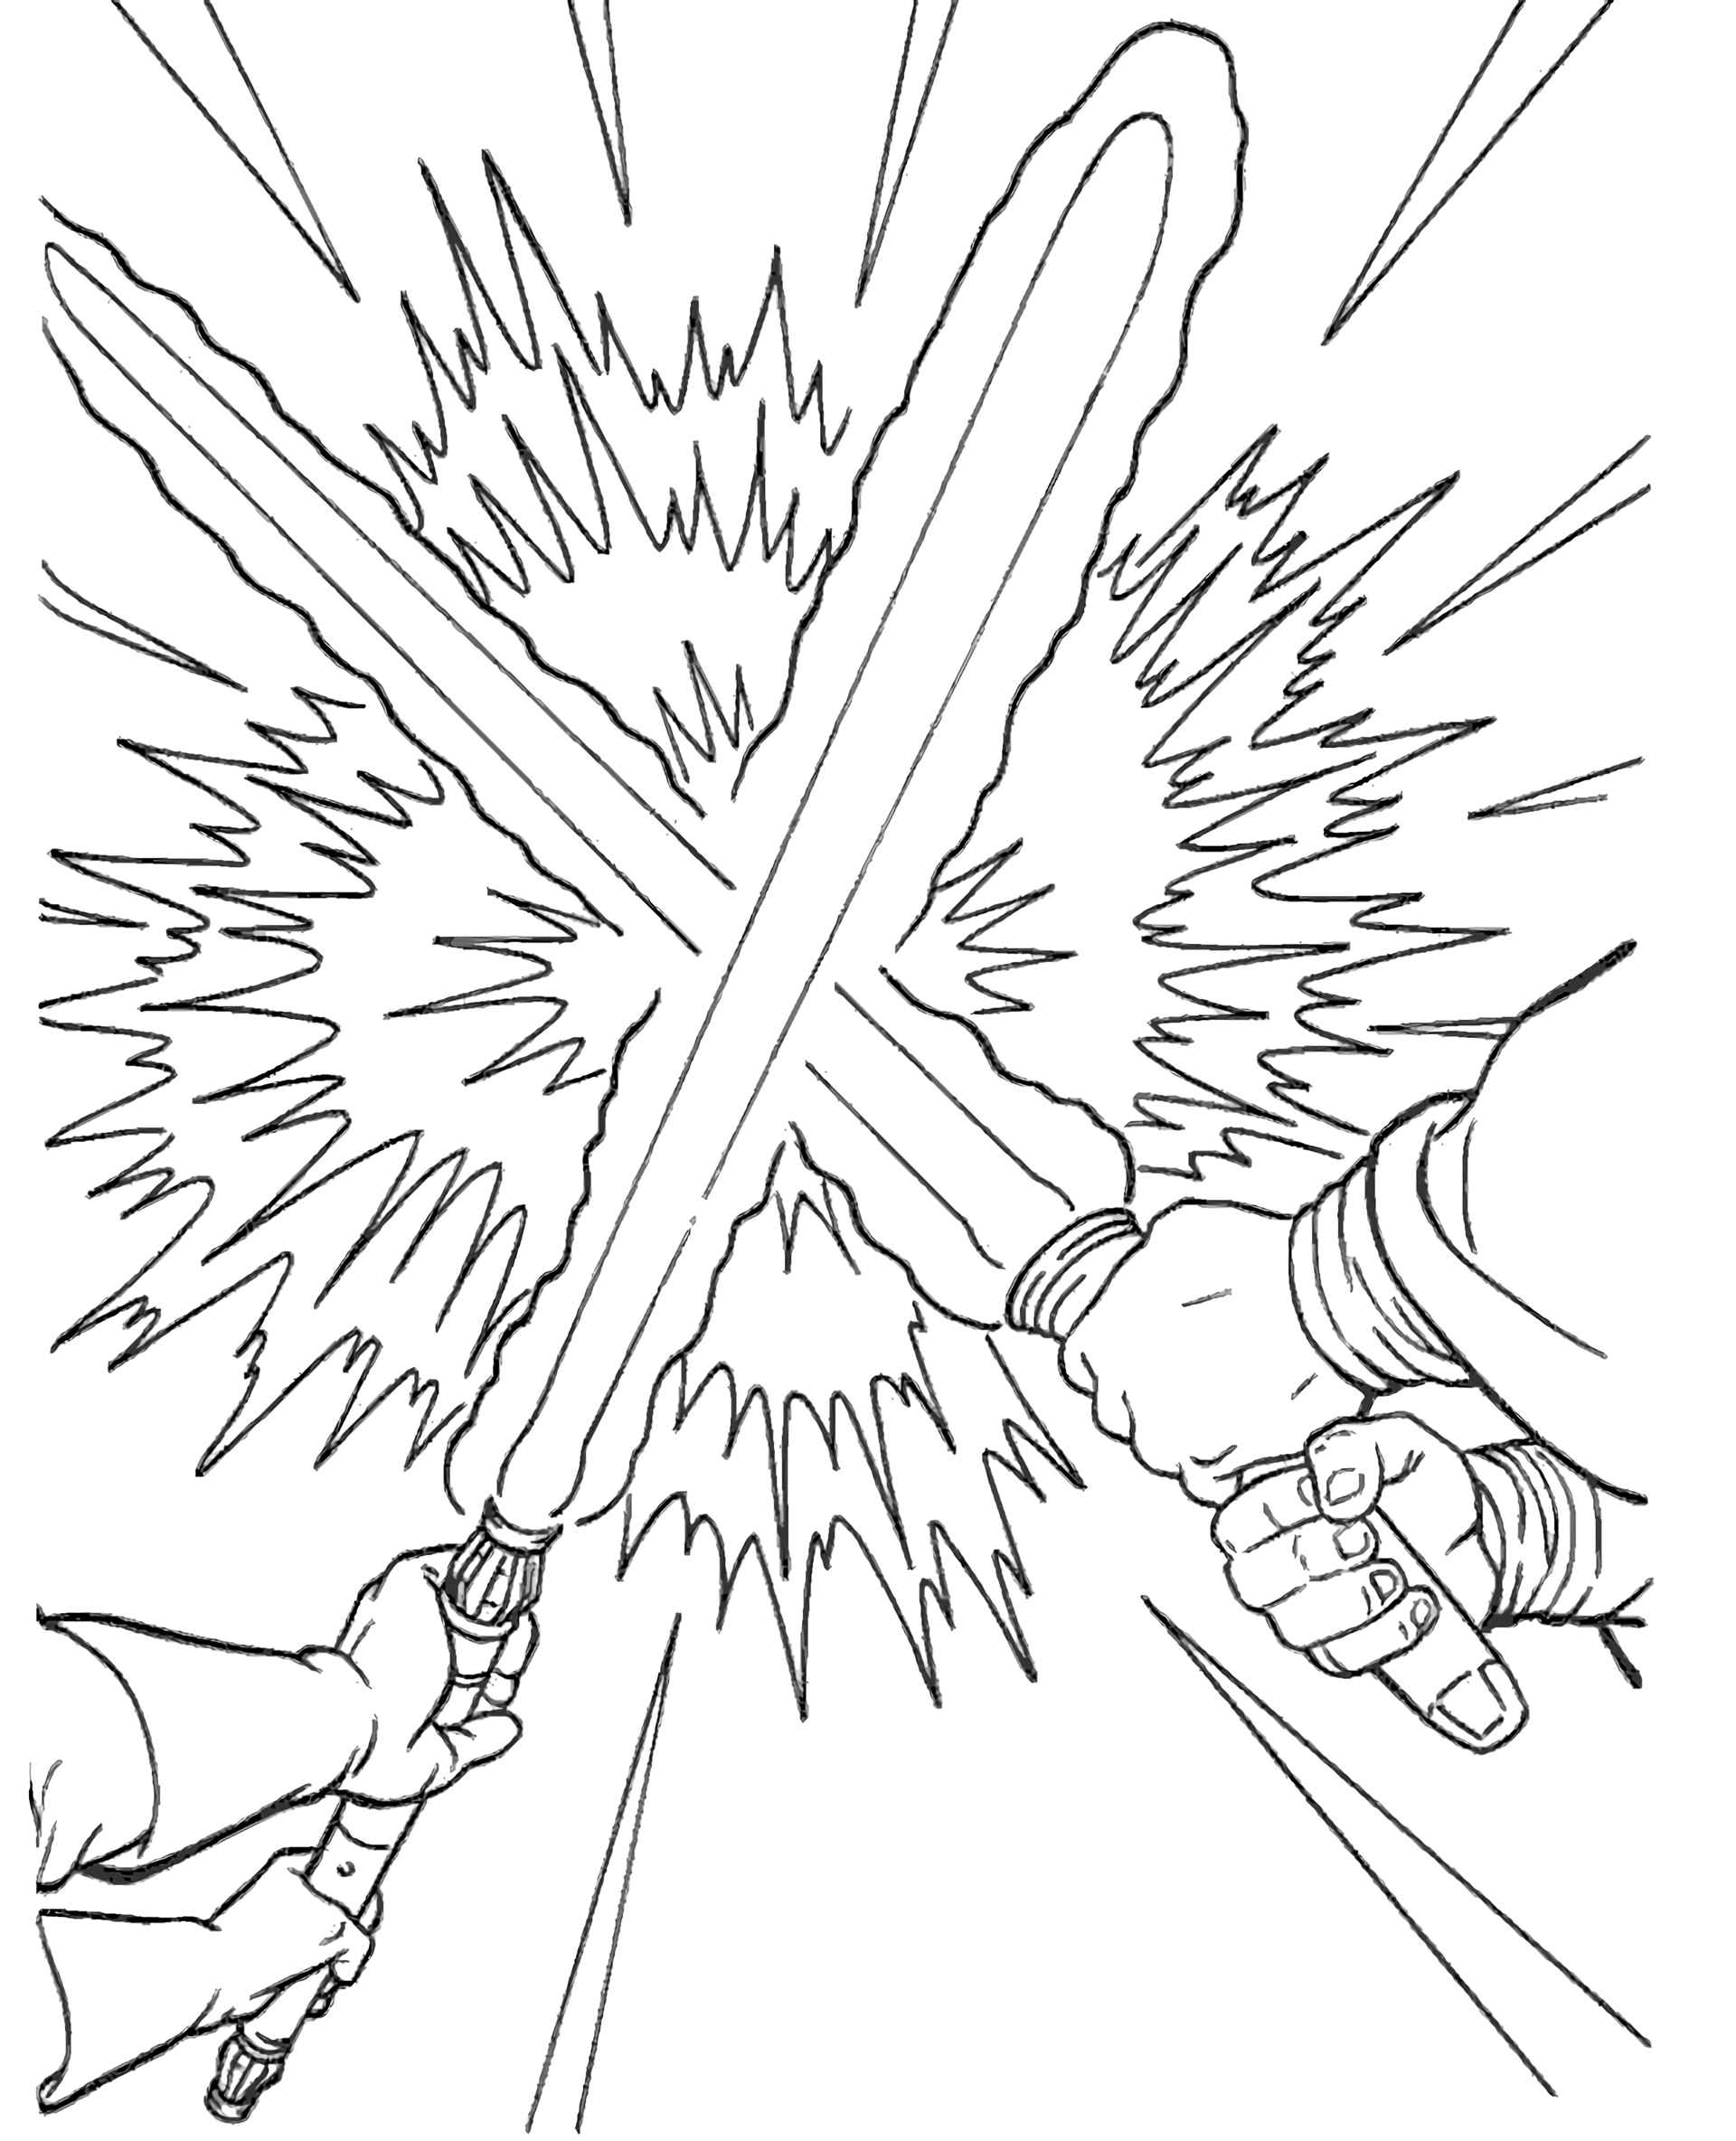 Confrontation Of Two Forces In Star Wars Coloring Page